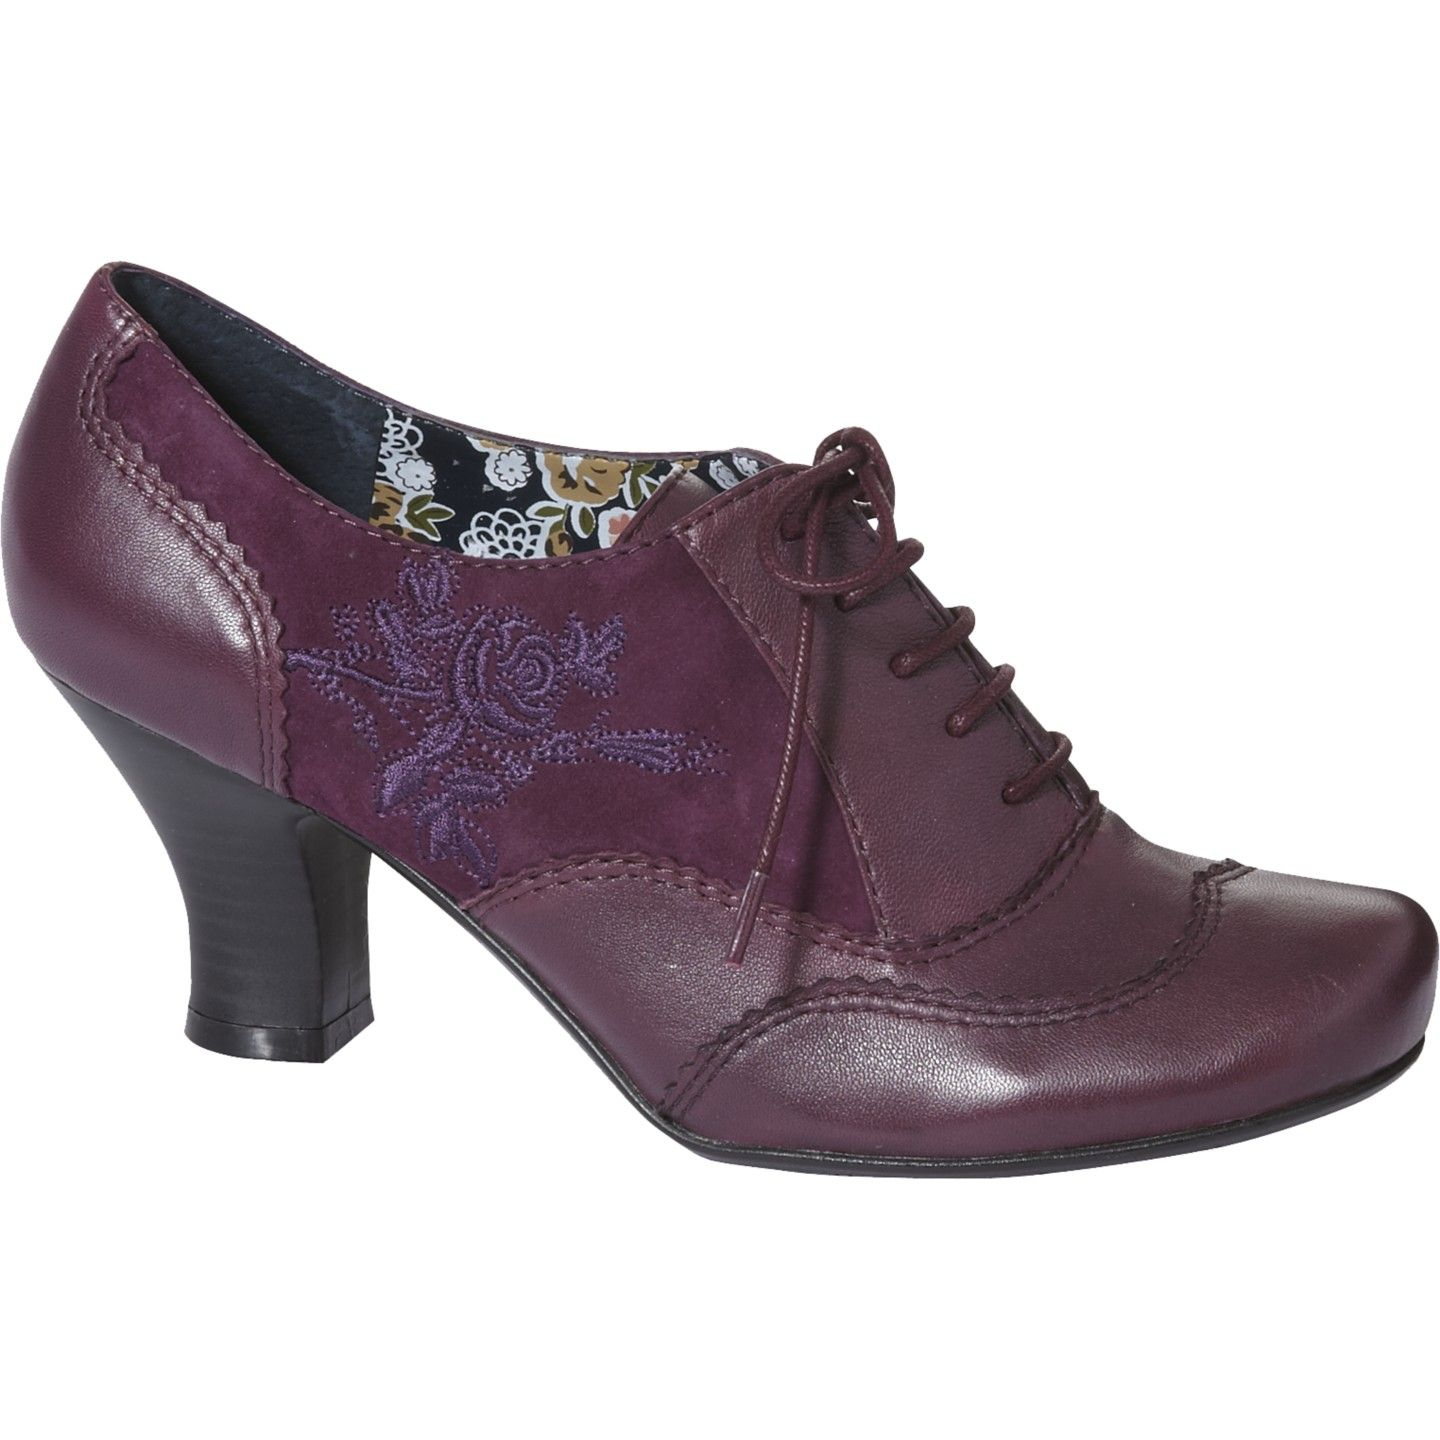 Purple Hush Puppies 48 In The Sale Nice Shoes Doll Shoes Heeled Boots